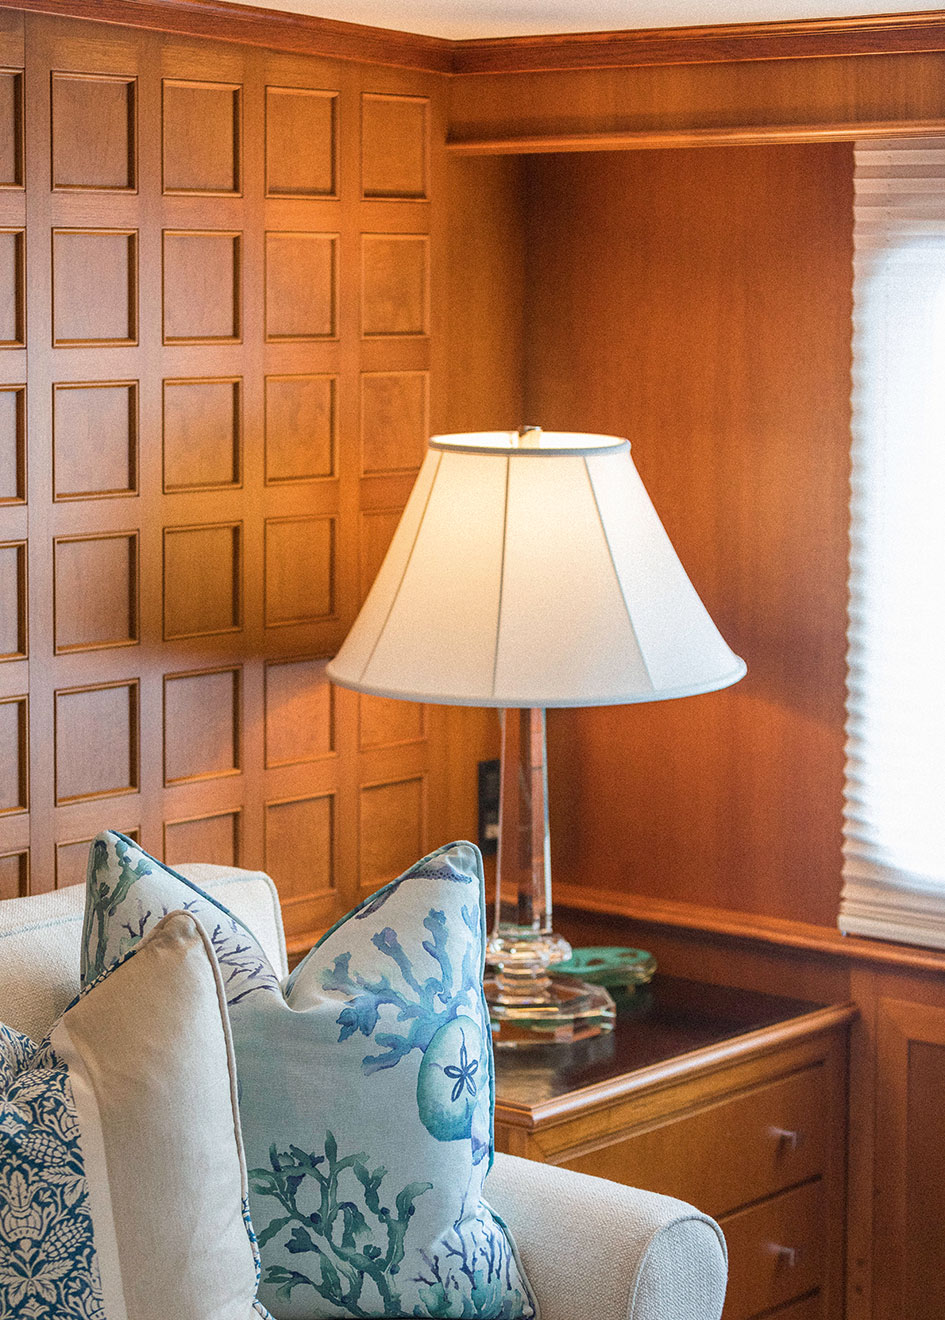 interior-detail-on-the-refitted-feadship-superyacht-berilda-credit-thierry-dehove